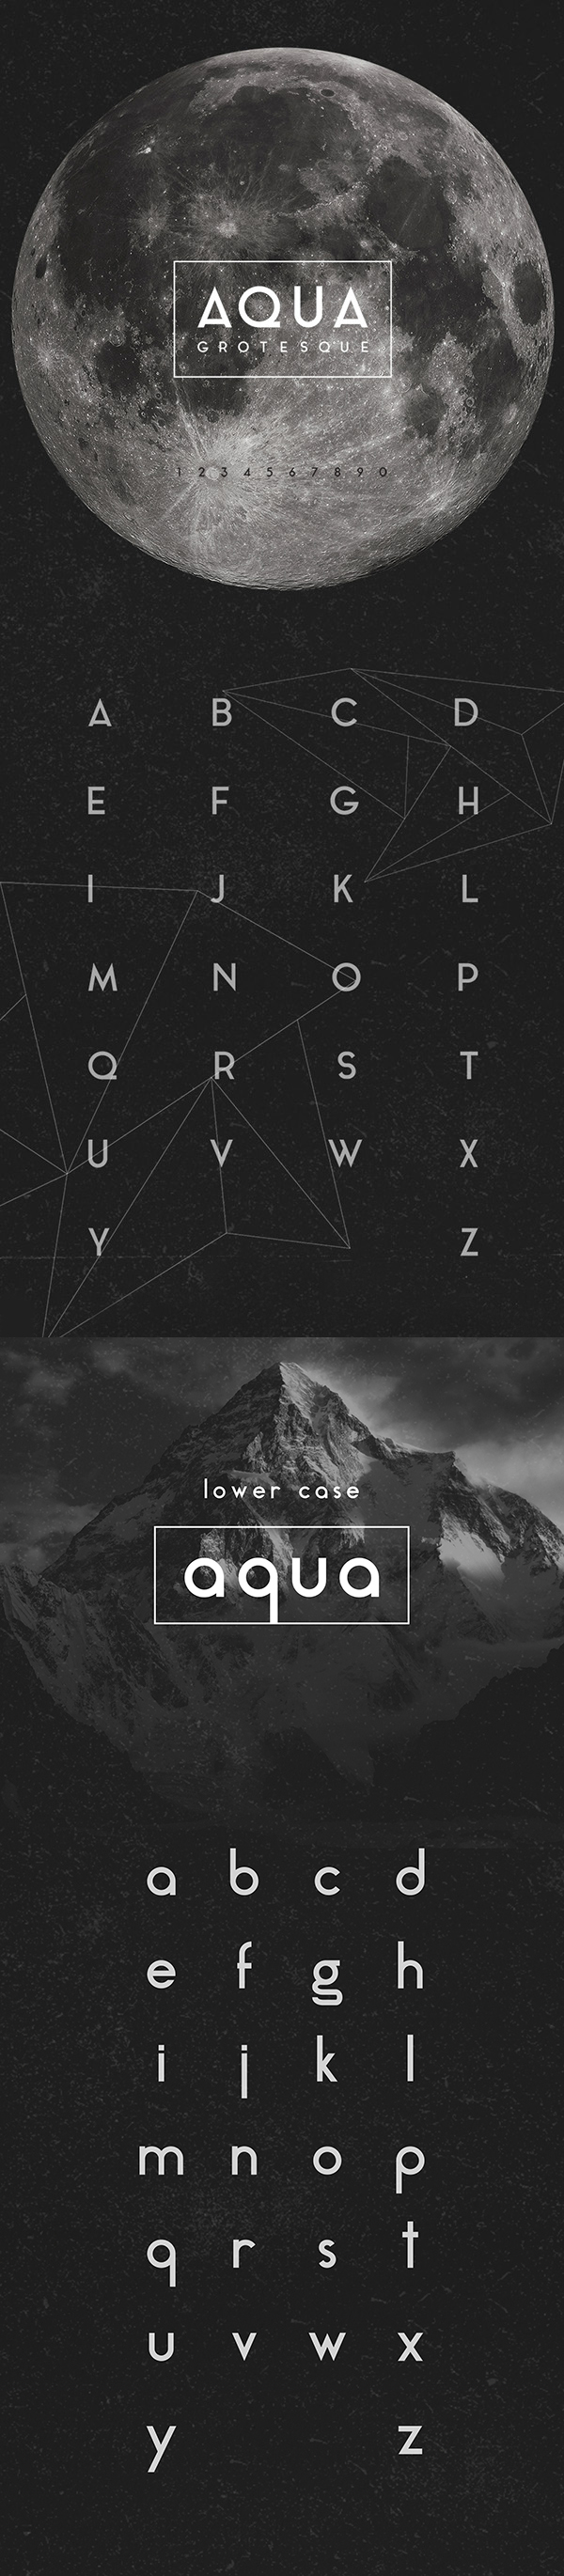 Beautiful, creative free fonts for designers - Aqua Grotesque